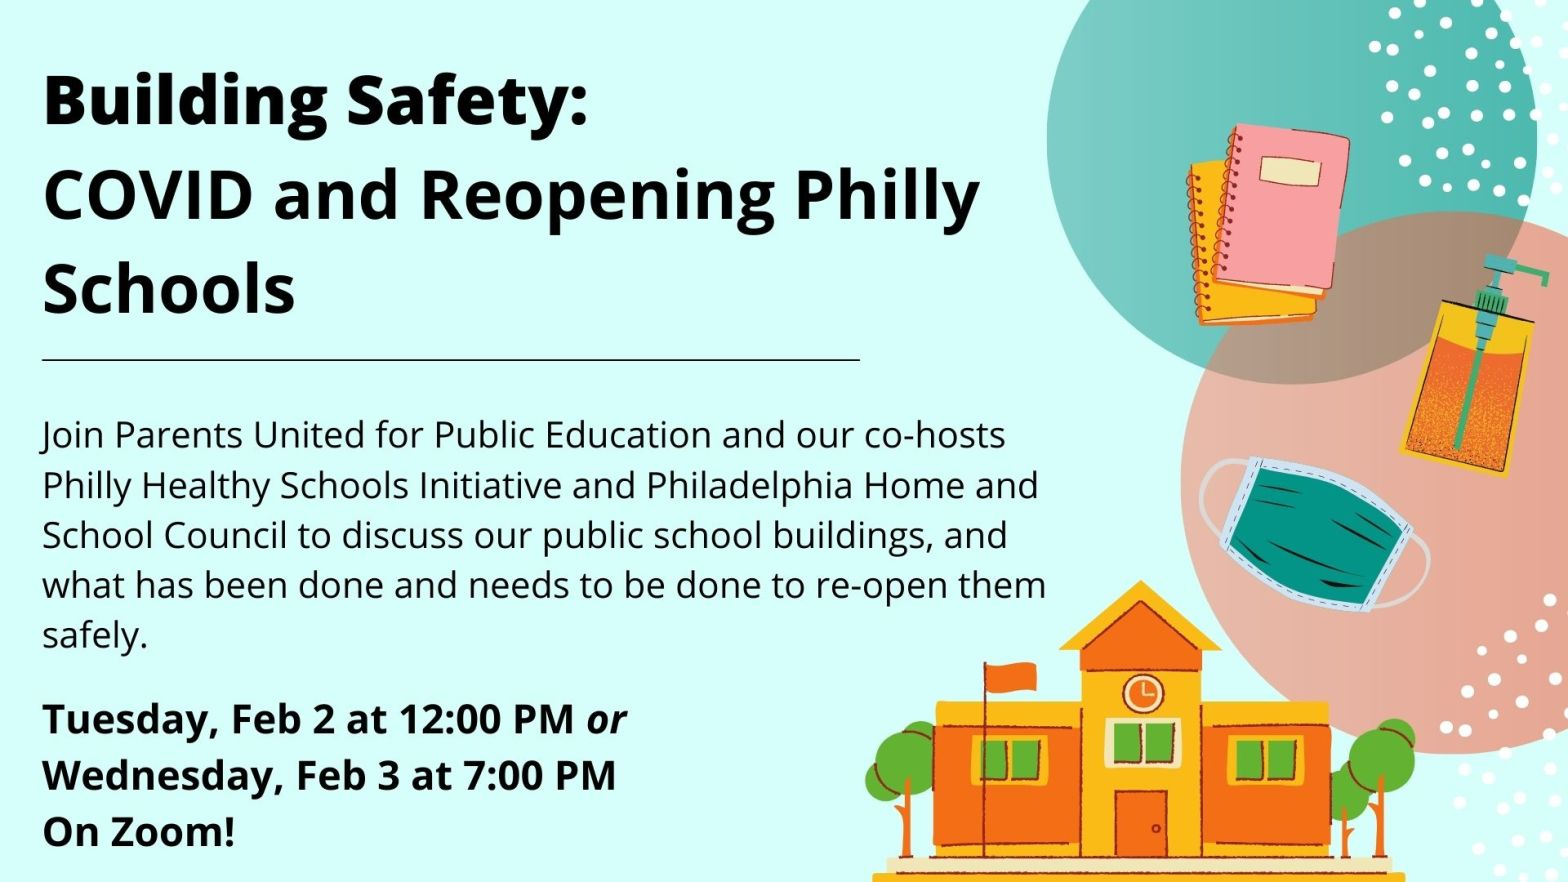 Flyer for Building Safety: COVID and Reopening Philly Schools webinar